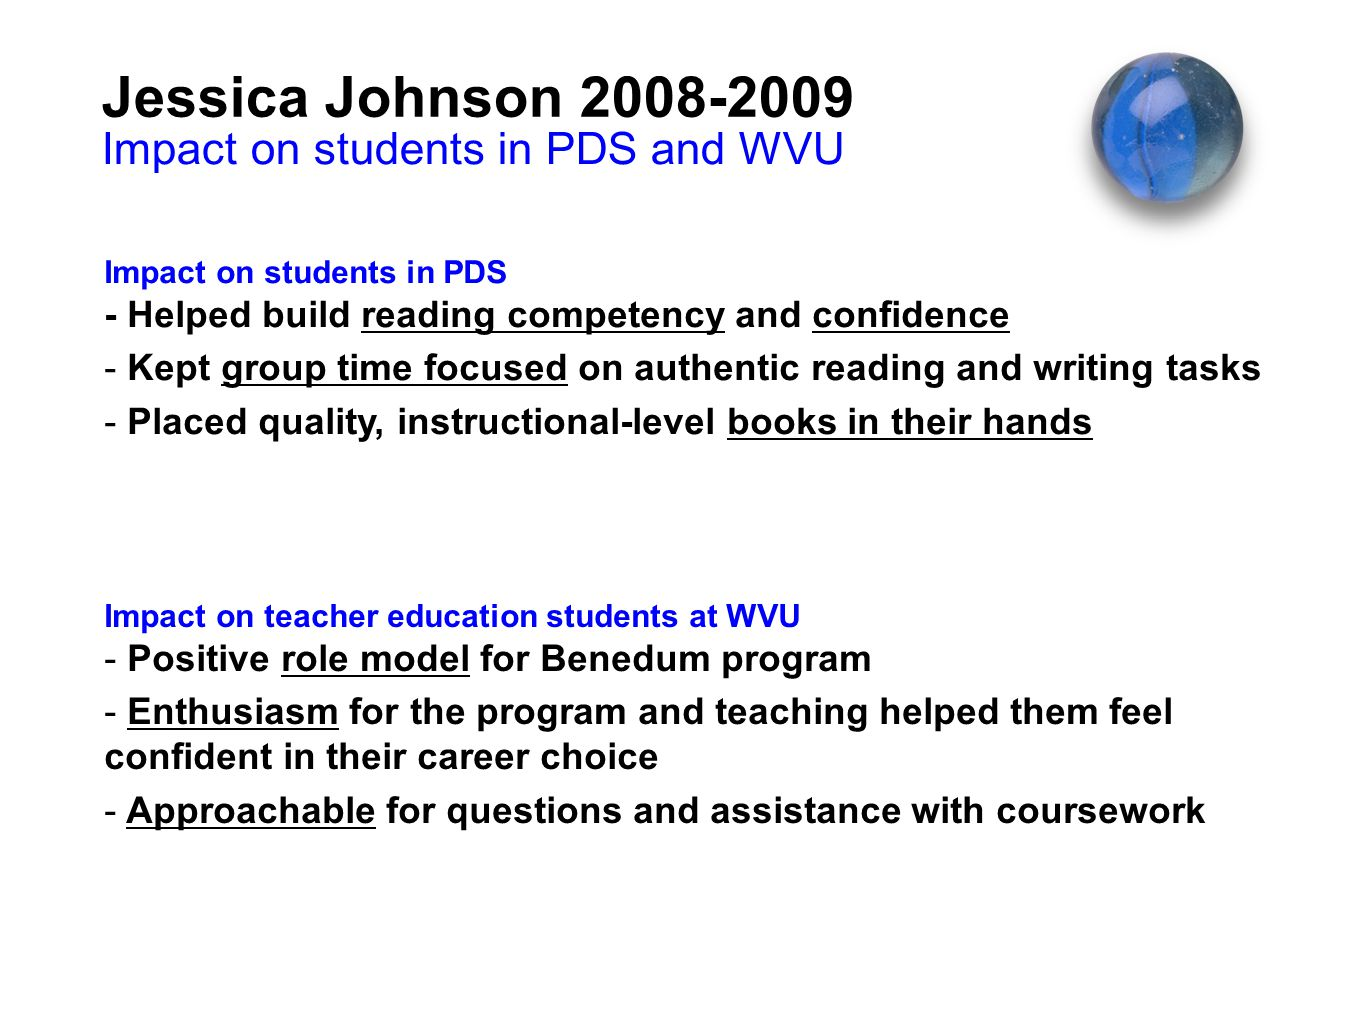 Jessica Johnson 2008-2009 Impact on students in PDS and WVU